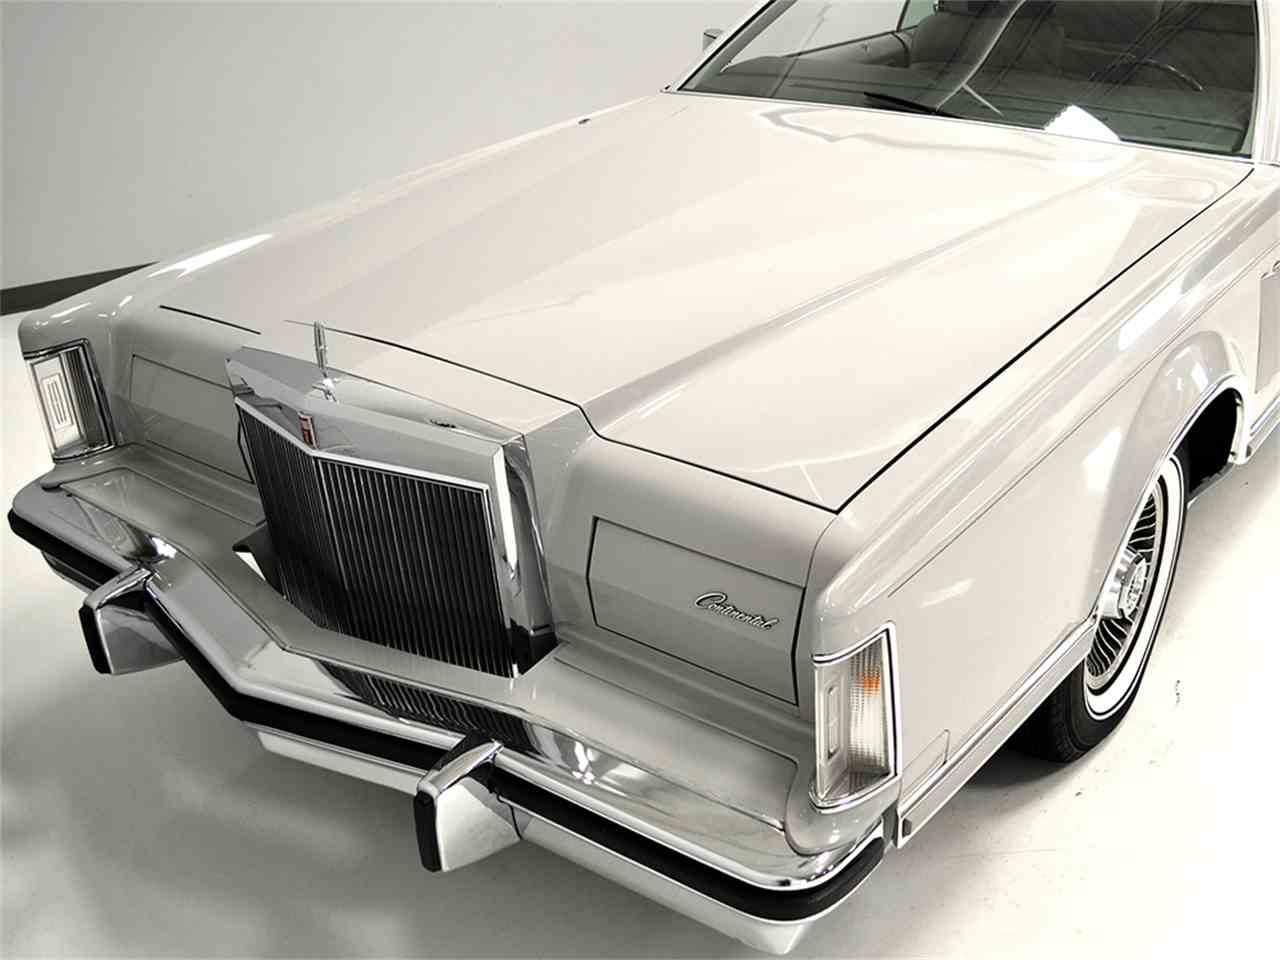 Large Picture of 1977 Continental Mark V located in Macedonia Ohio - $13,900.00 Offered by Harwood Motors, LTD. - JOGC